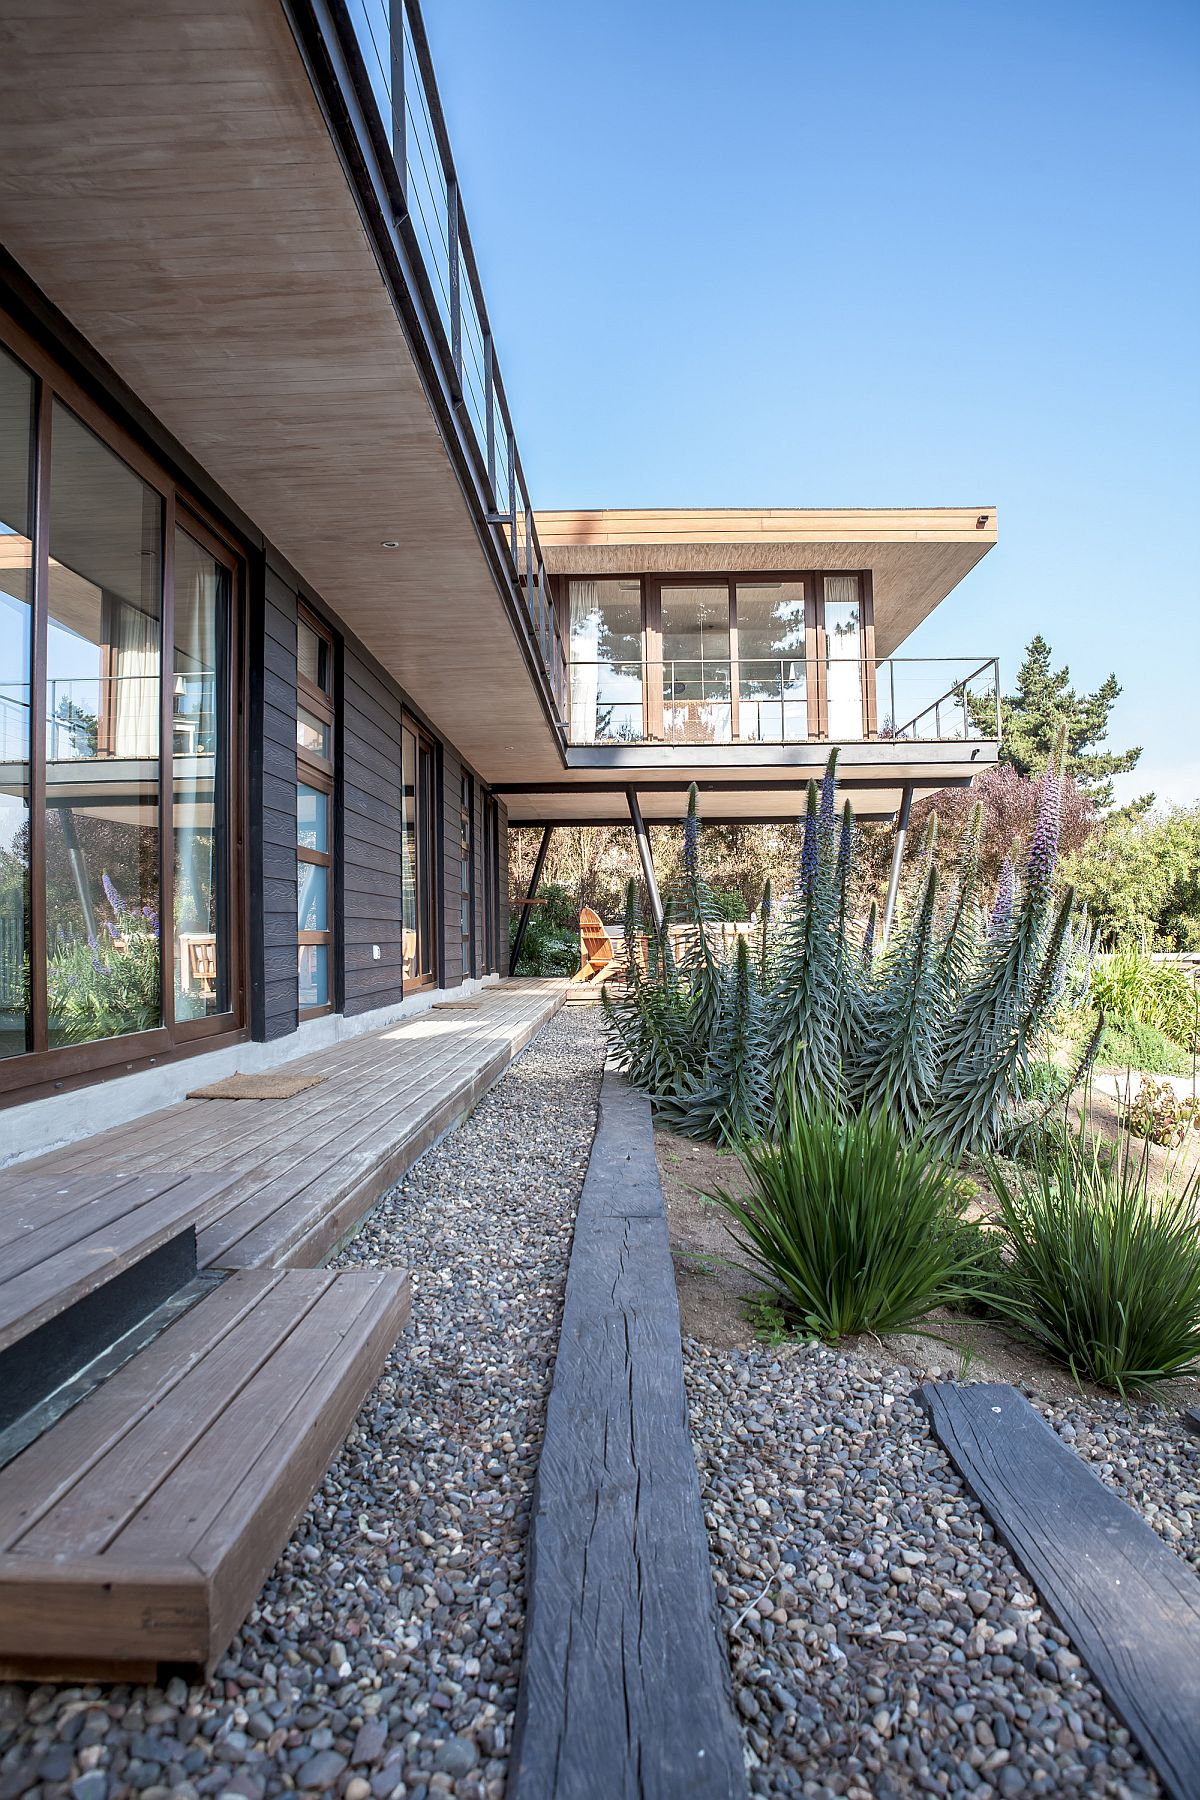 Pine wood panelling gives the exteriorn inviting appeal